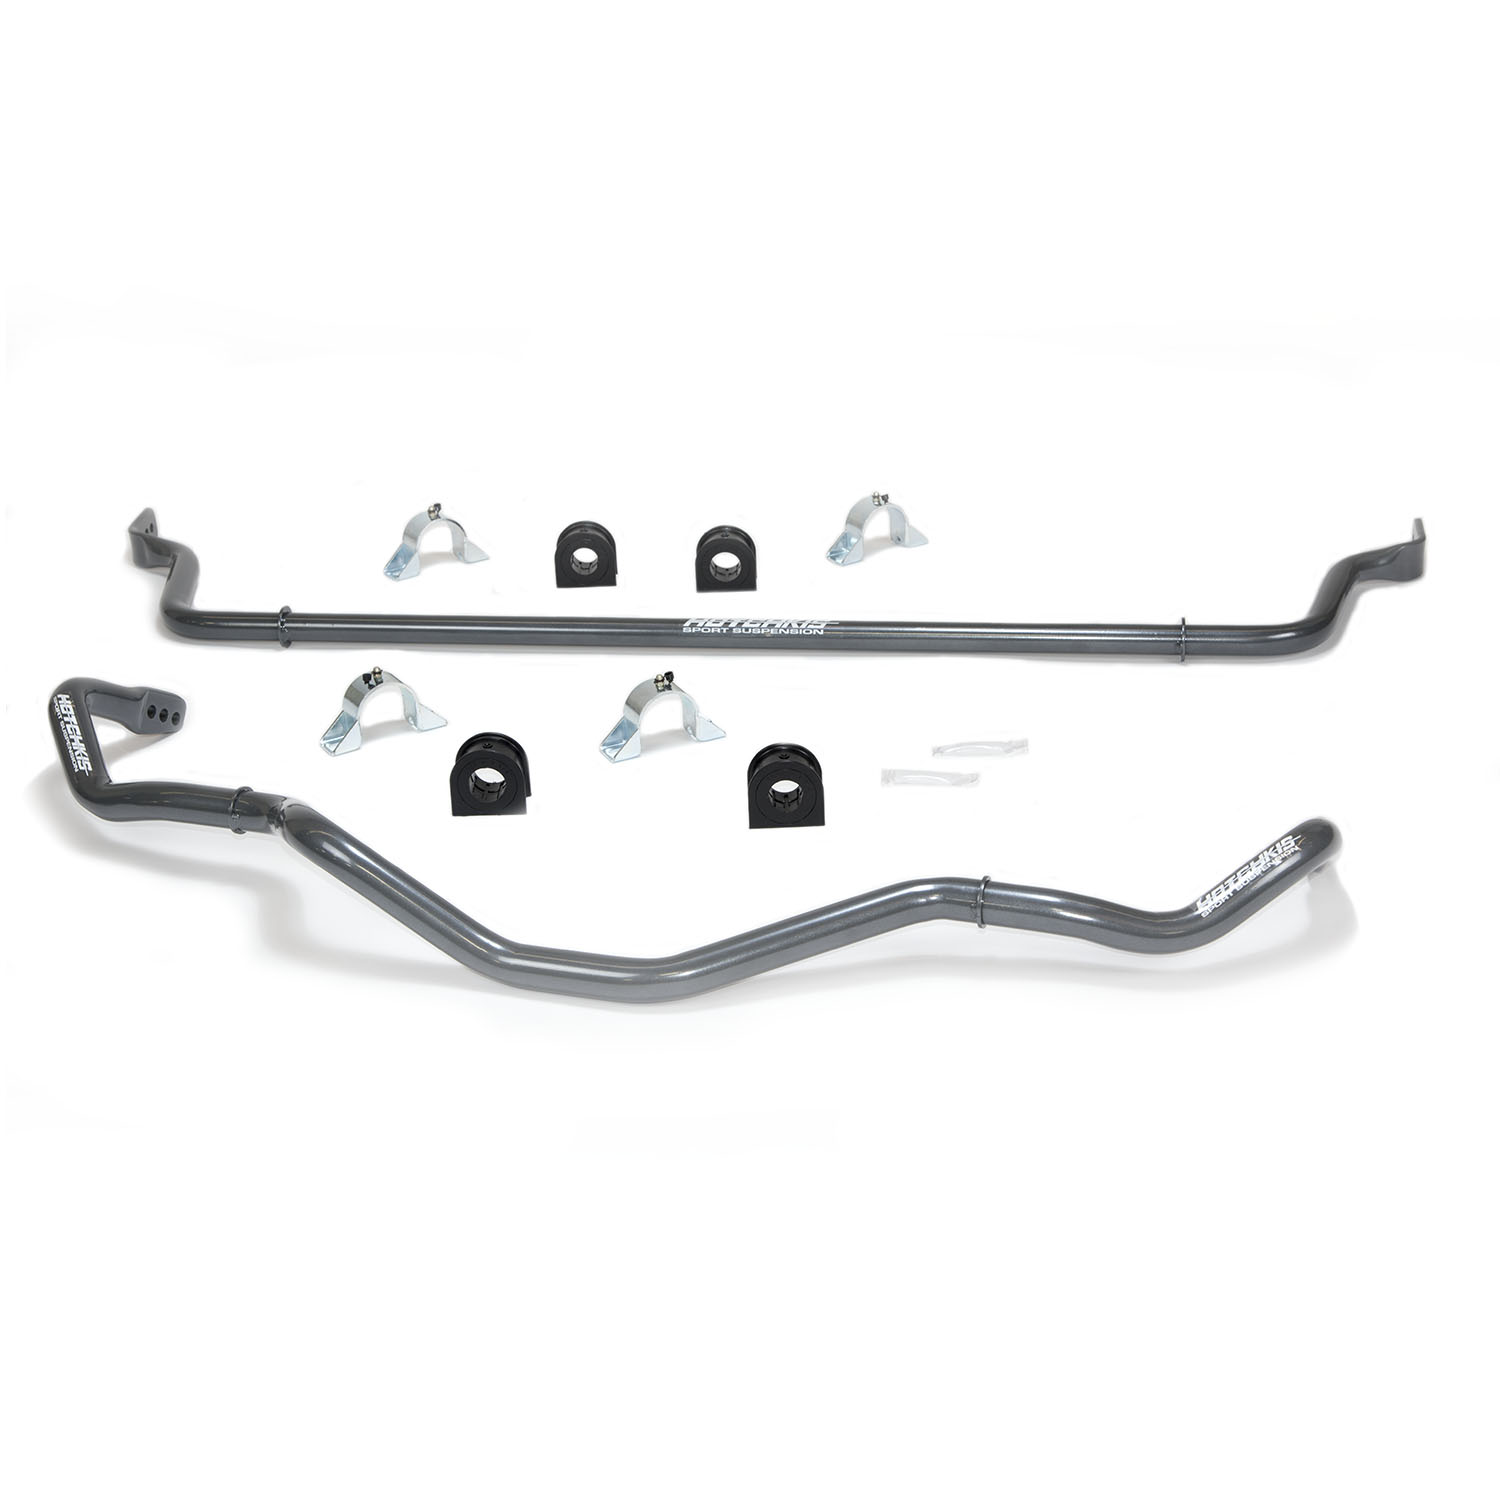 Hotchkis 2236F Sport Front Sway Bar for GM F-Body 70-81